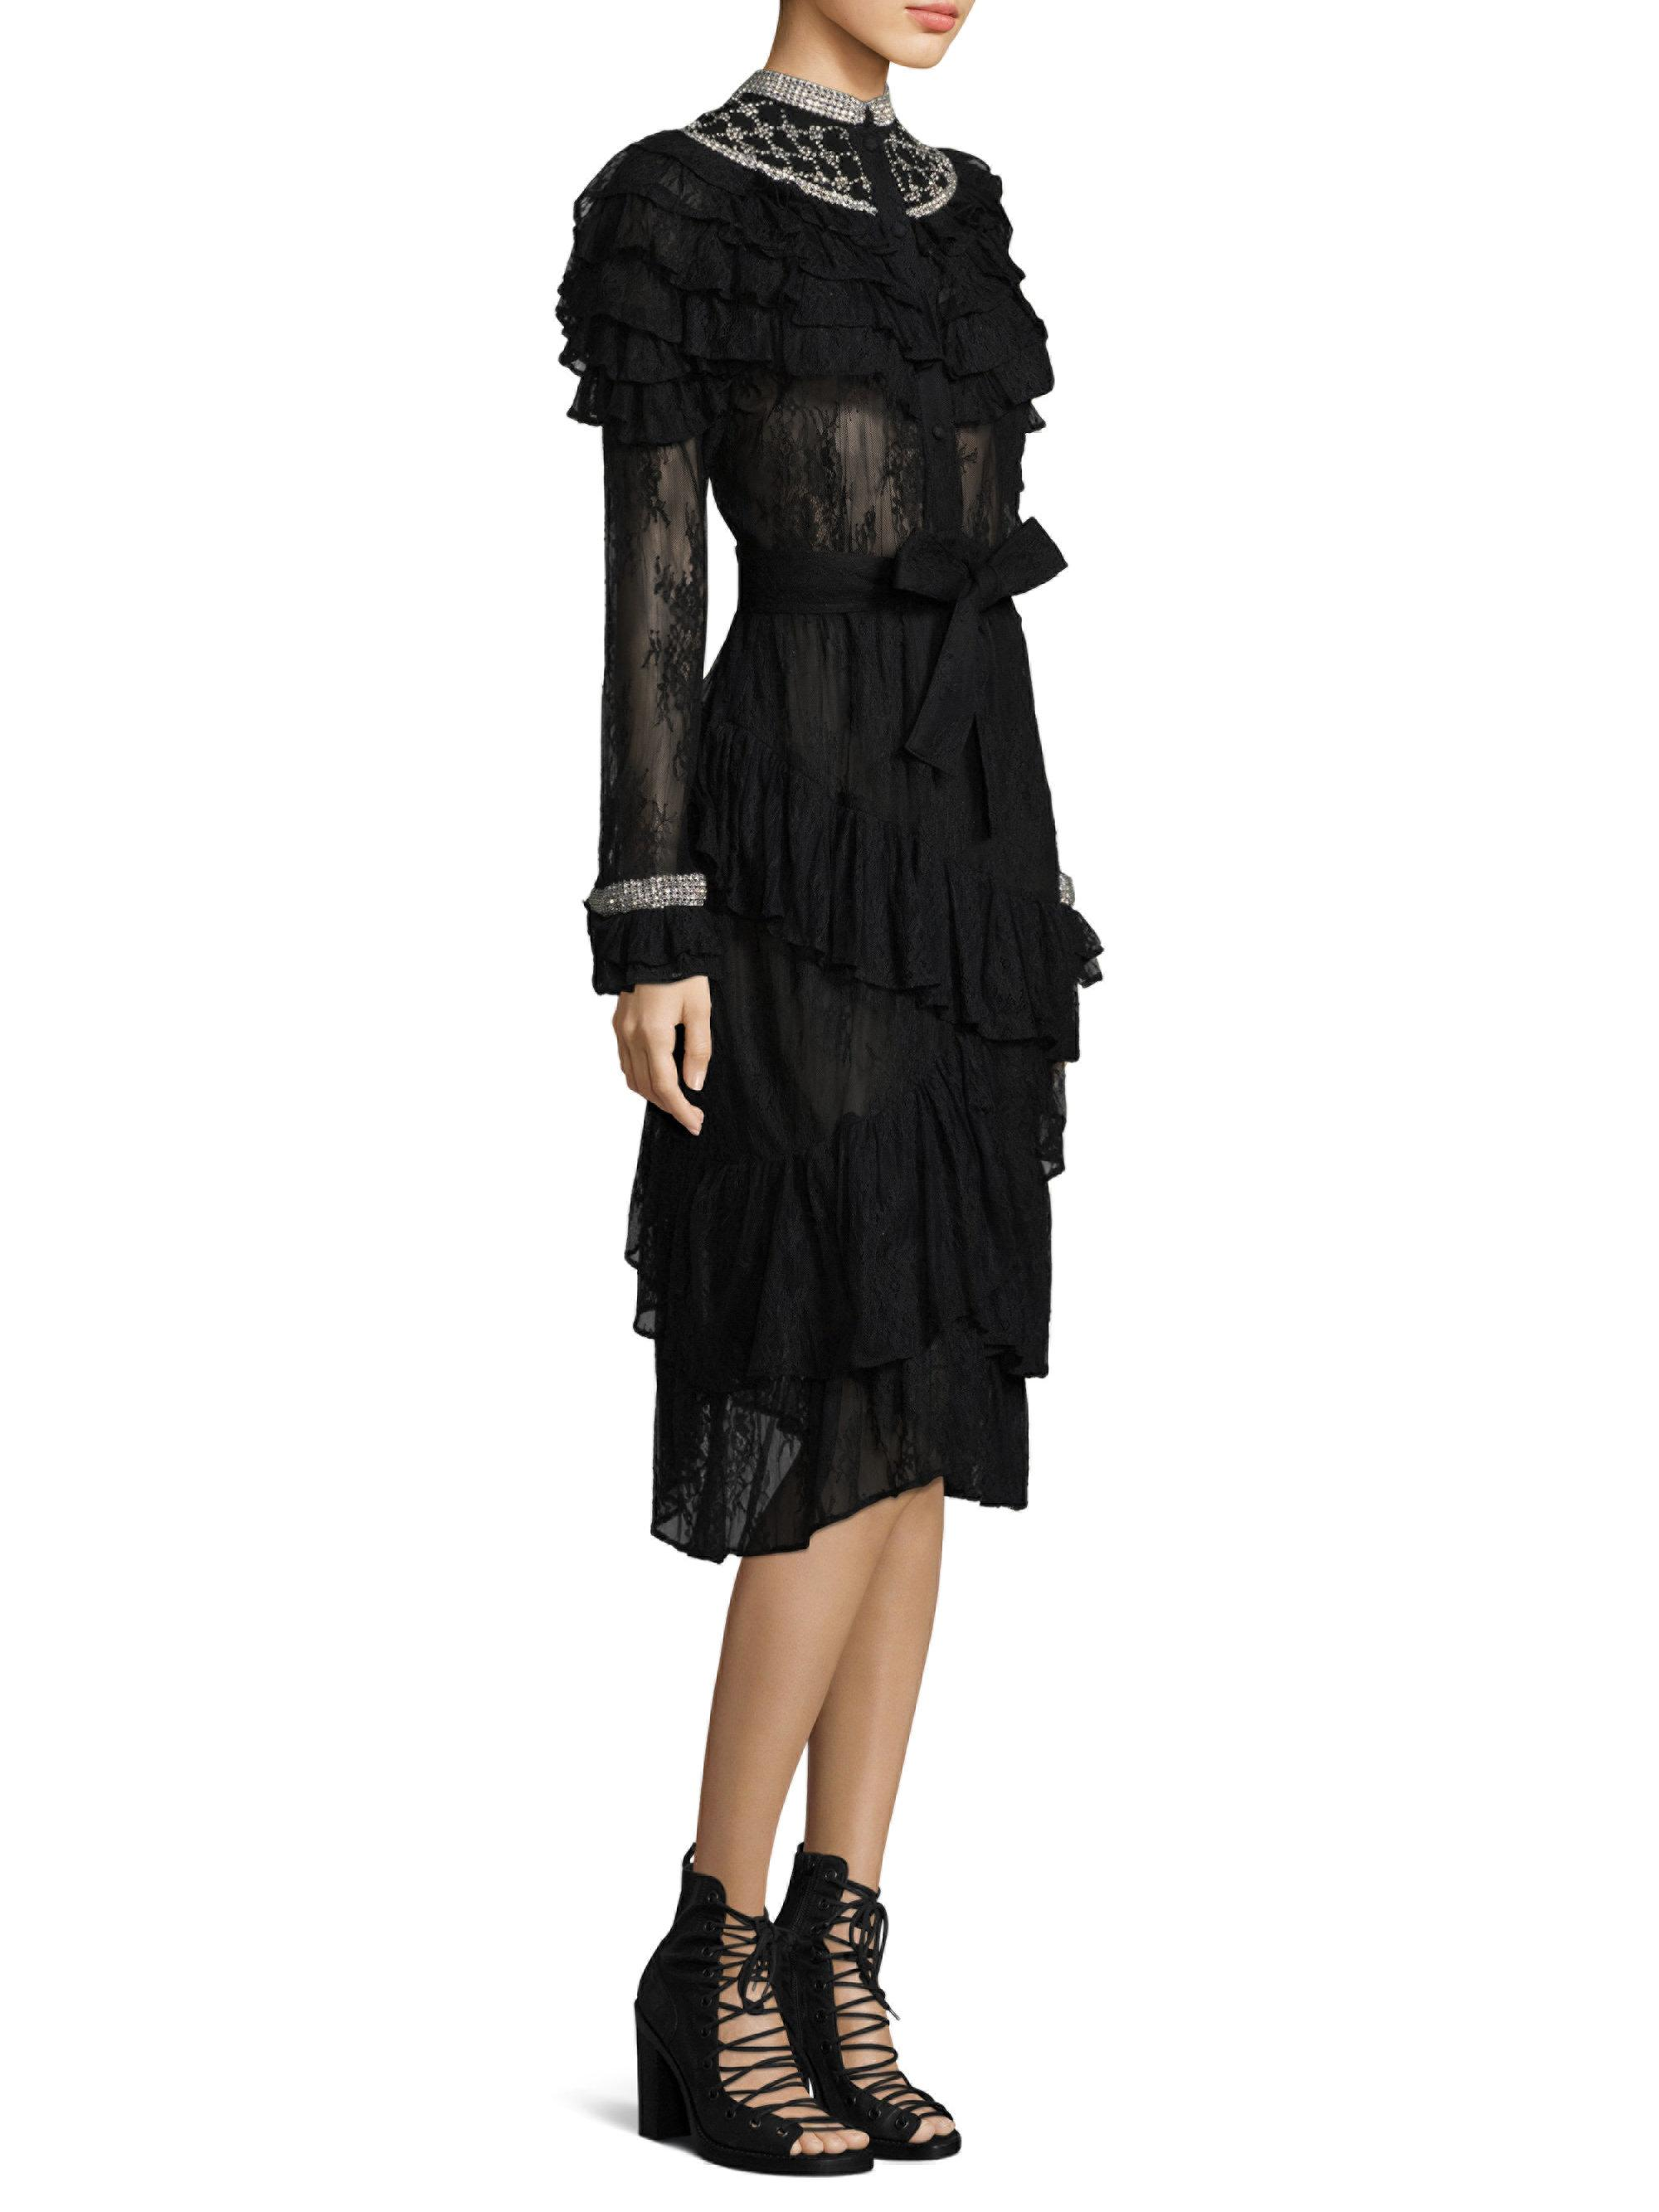 New Style lace dress - Black Dodo Bar Or Sale High Quality JC5q3